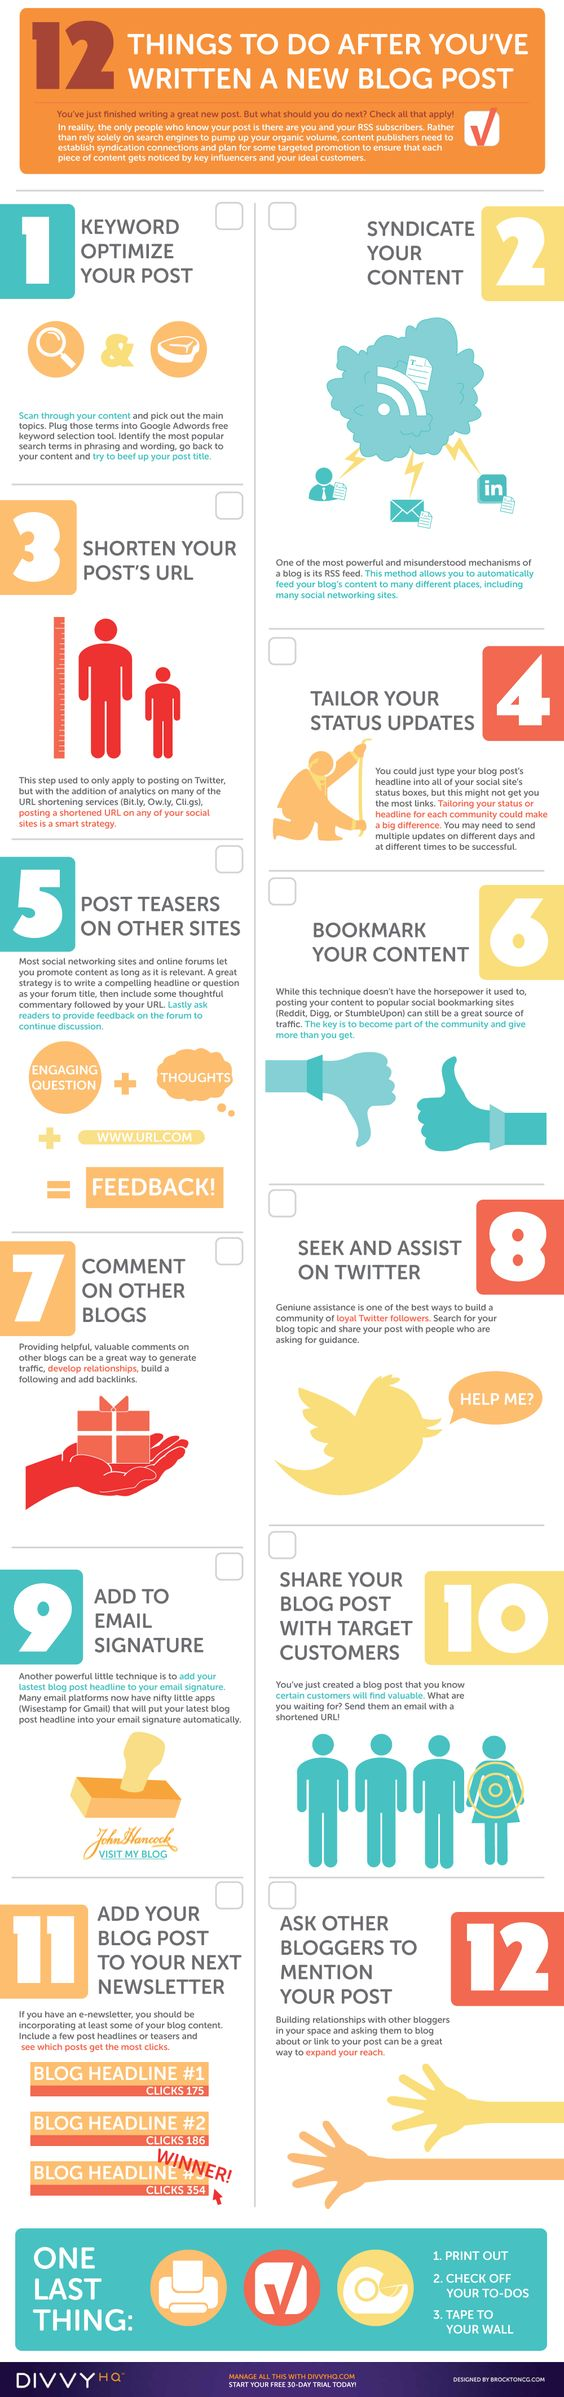 12 Important Things To Do After Writing Your Post [Infographic]